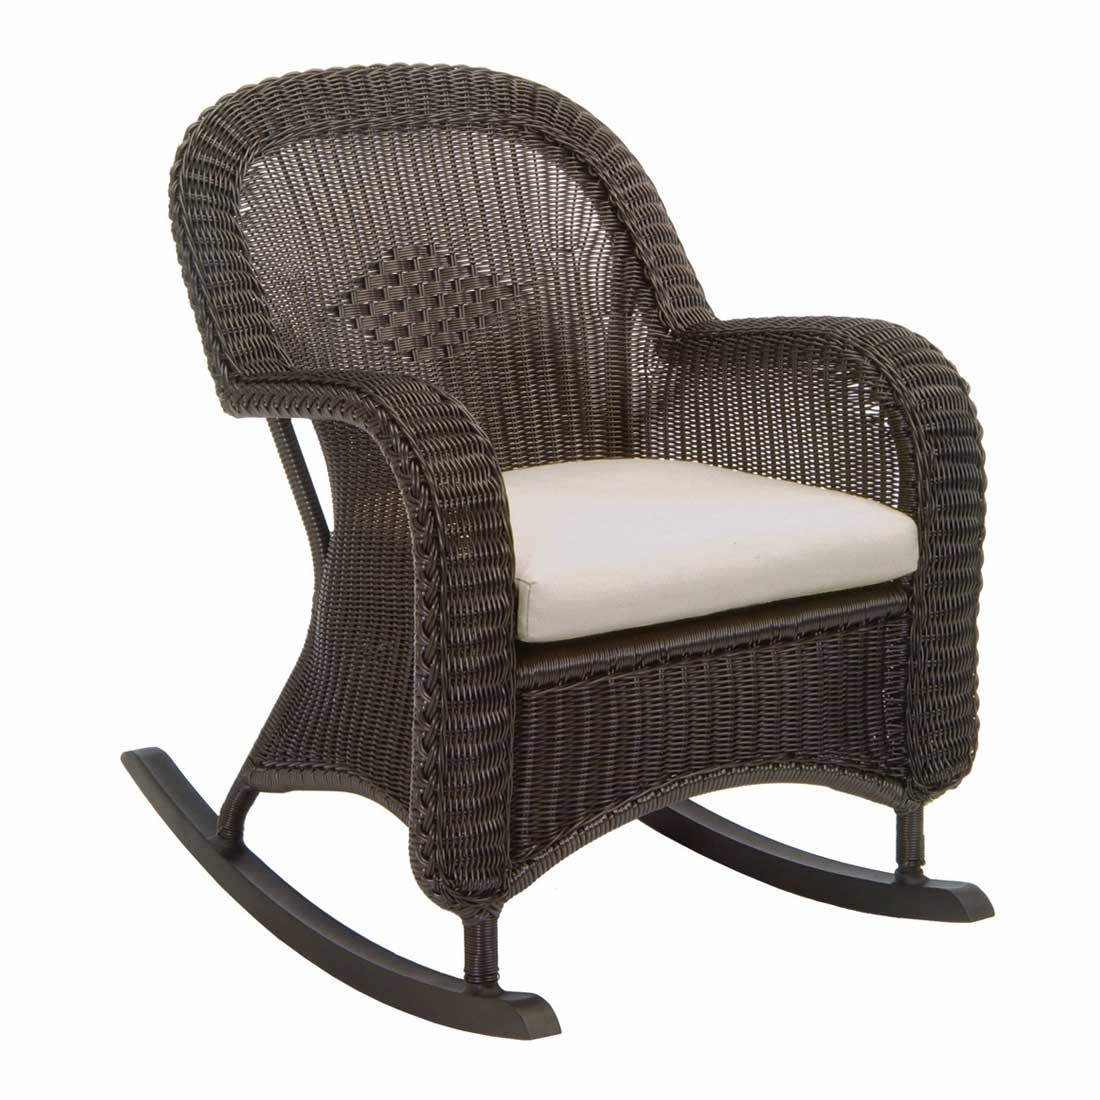 Classic Outdoor Wicker Rocking Chair Throughout Outdoor Wicker Rocking Chairs (#4 of 15)